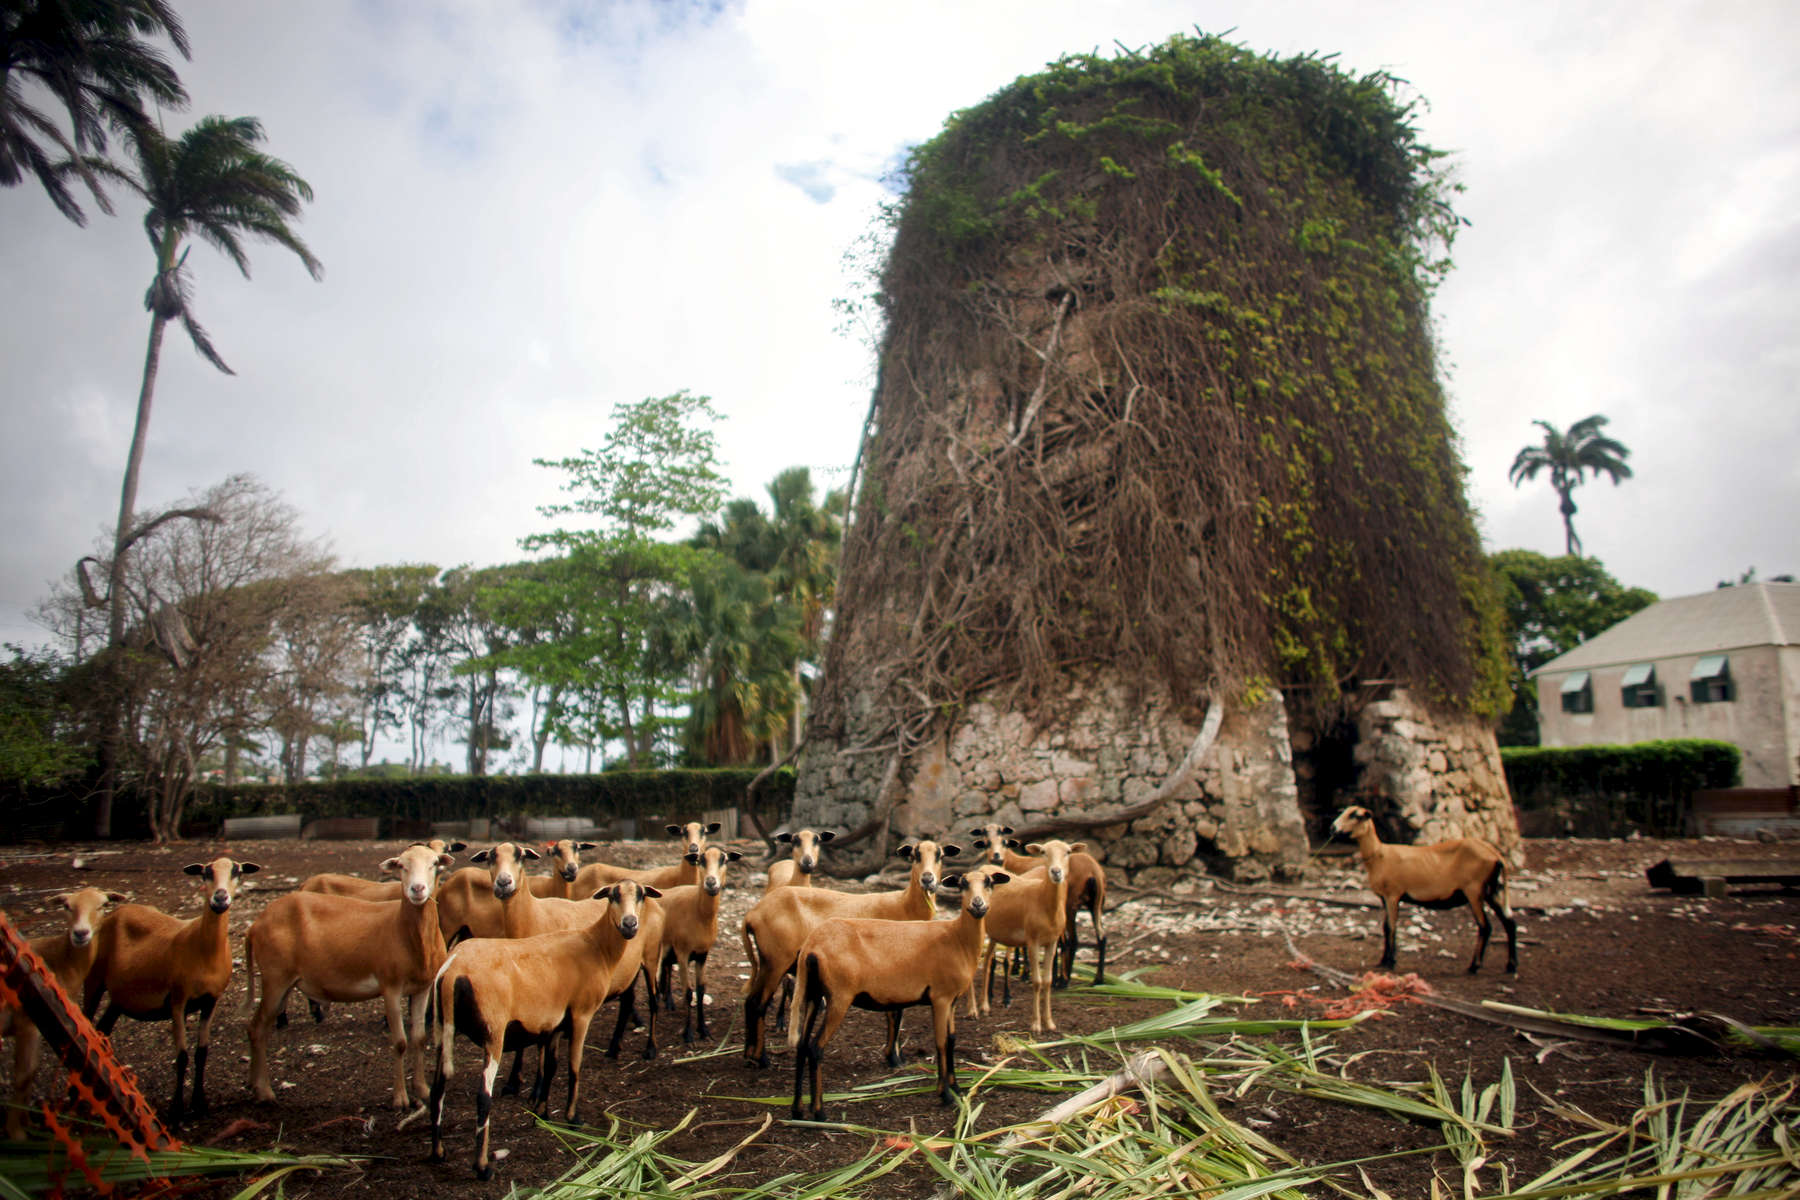 Blackbelly sheep surround a sugar plantation (background right) in Barbados on Saturday, April 10, 2010. (For The New York Times)